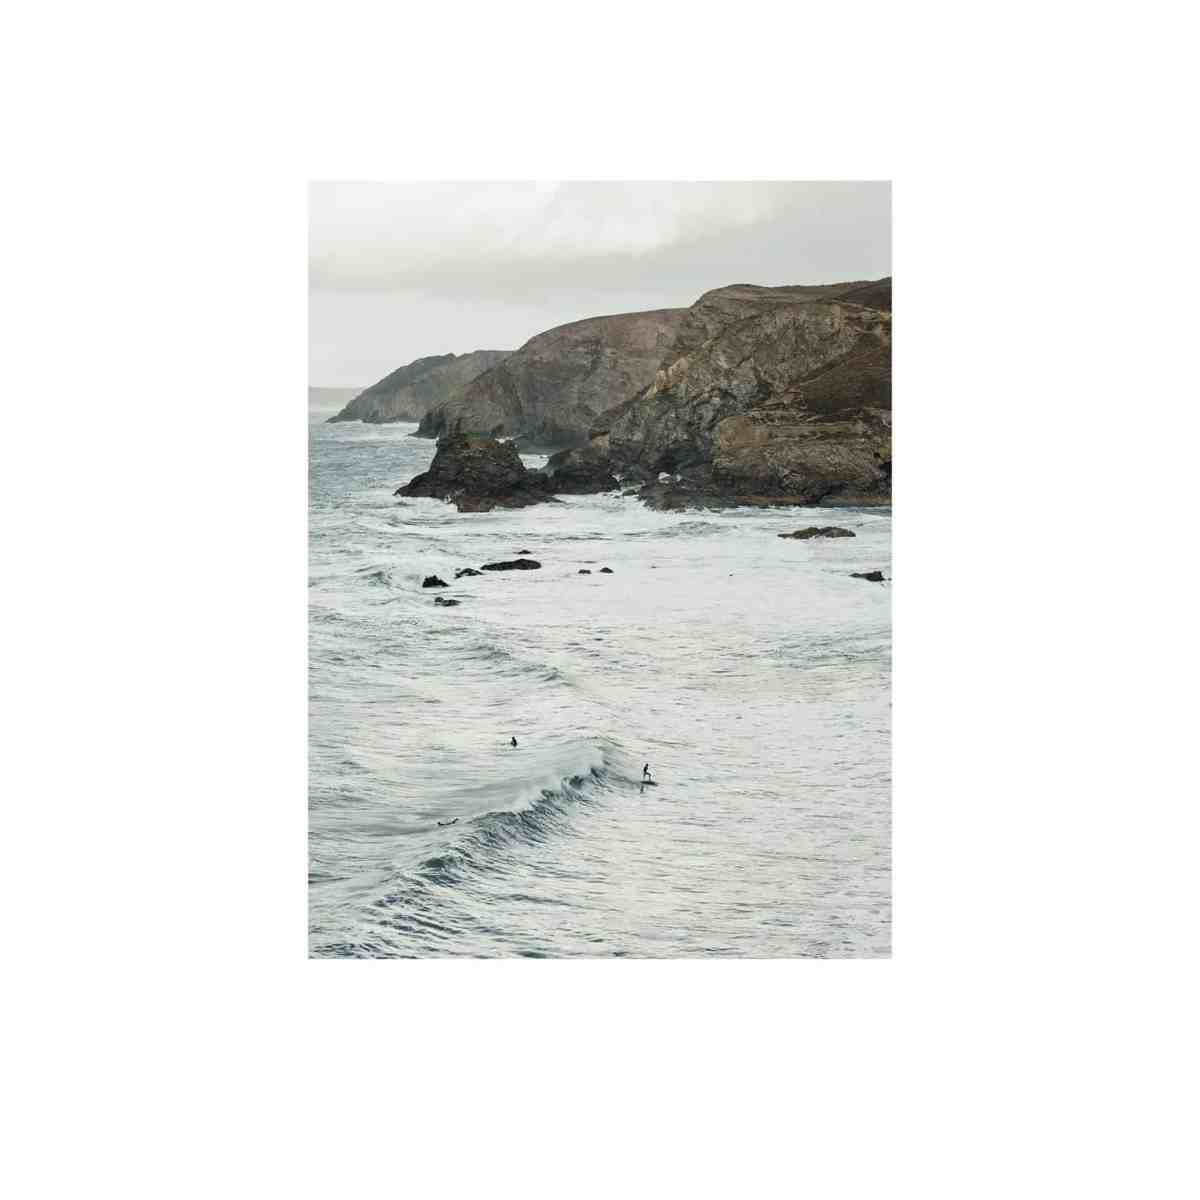 trevaunance-cove-ii-a1-print-only-tom-shaw-print-another-country_ea52e700-7ad4-423f-850f-a333bfcc34e2.jpg